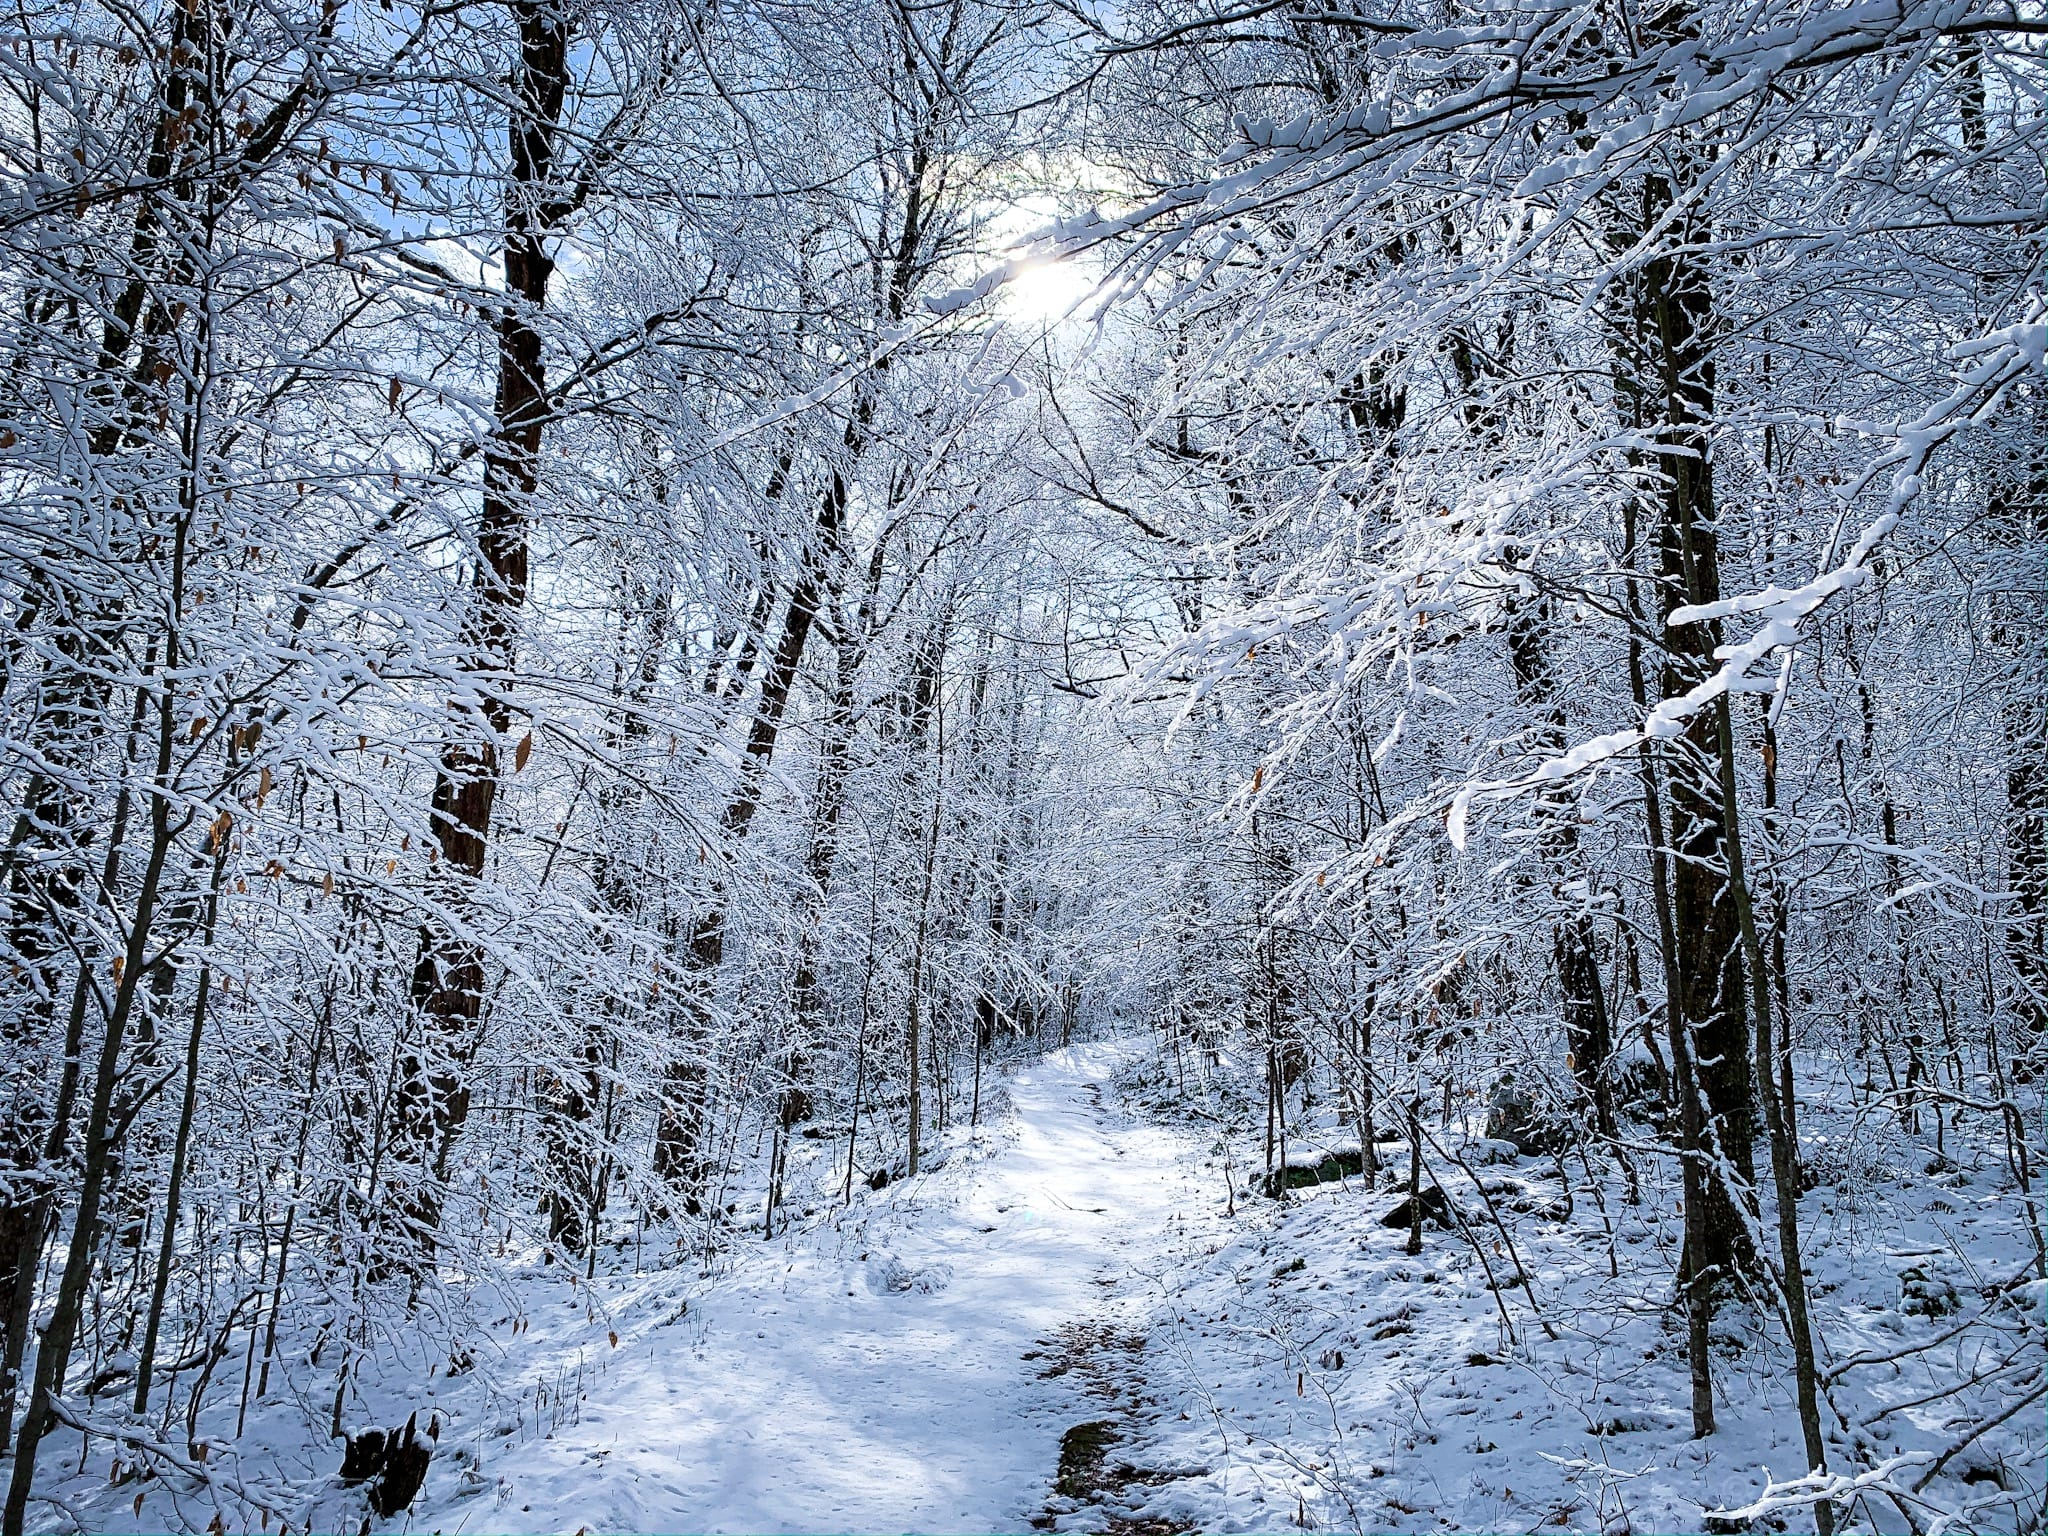 snow-covered trees on hiking trail